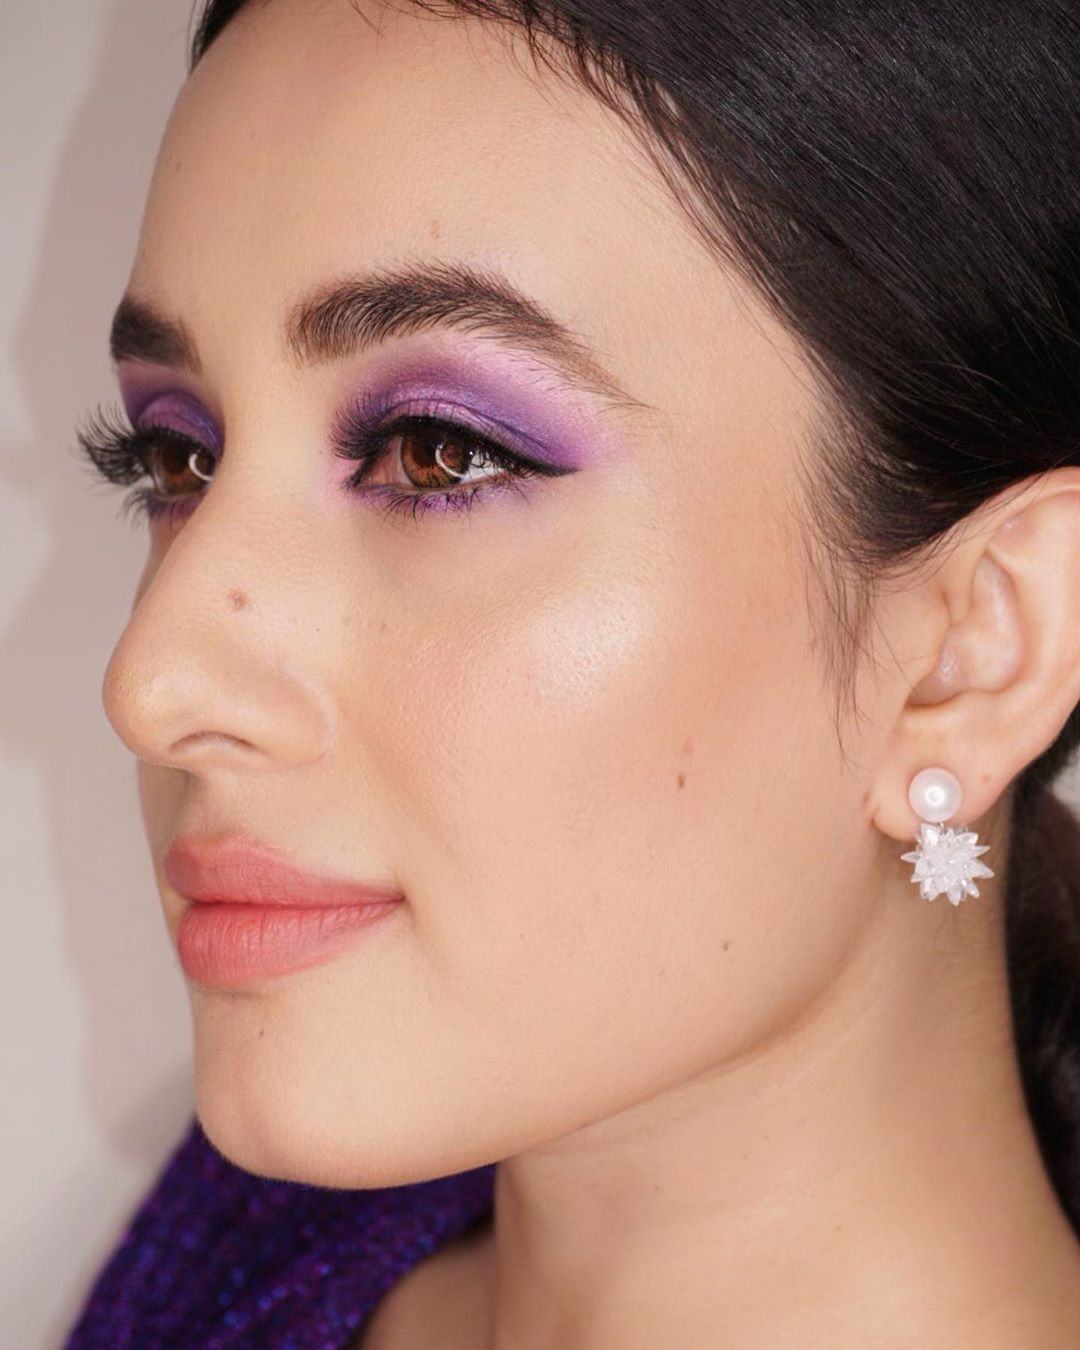 More about eye shadow, Artificial hair integrations